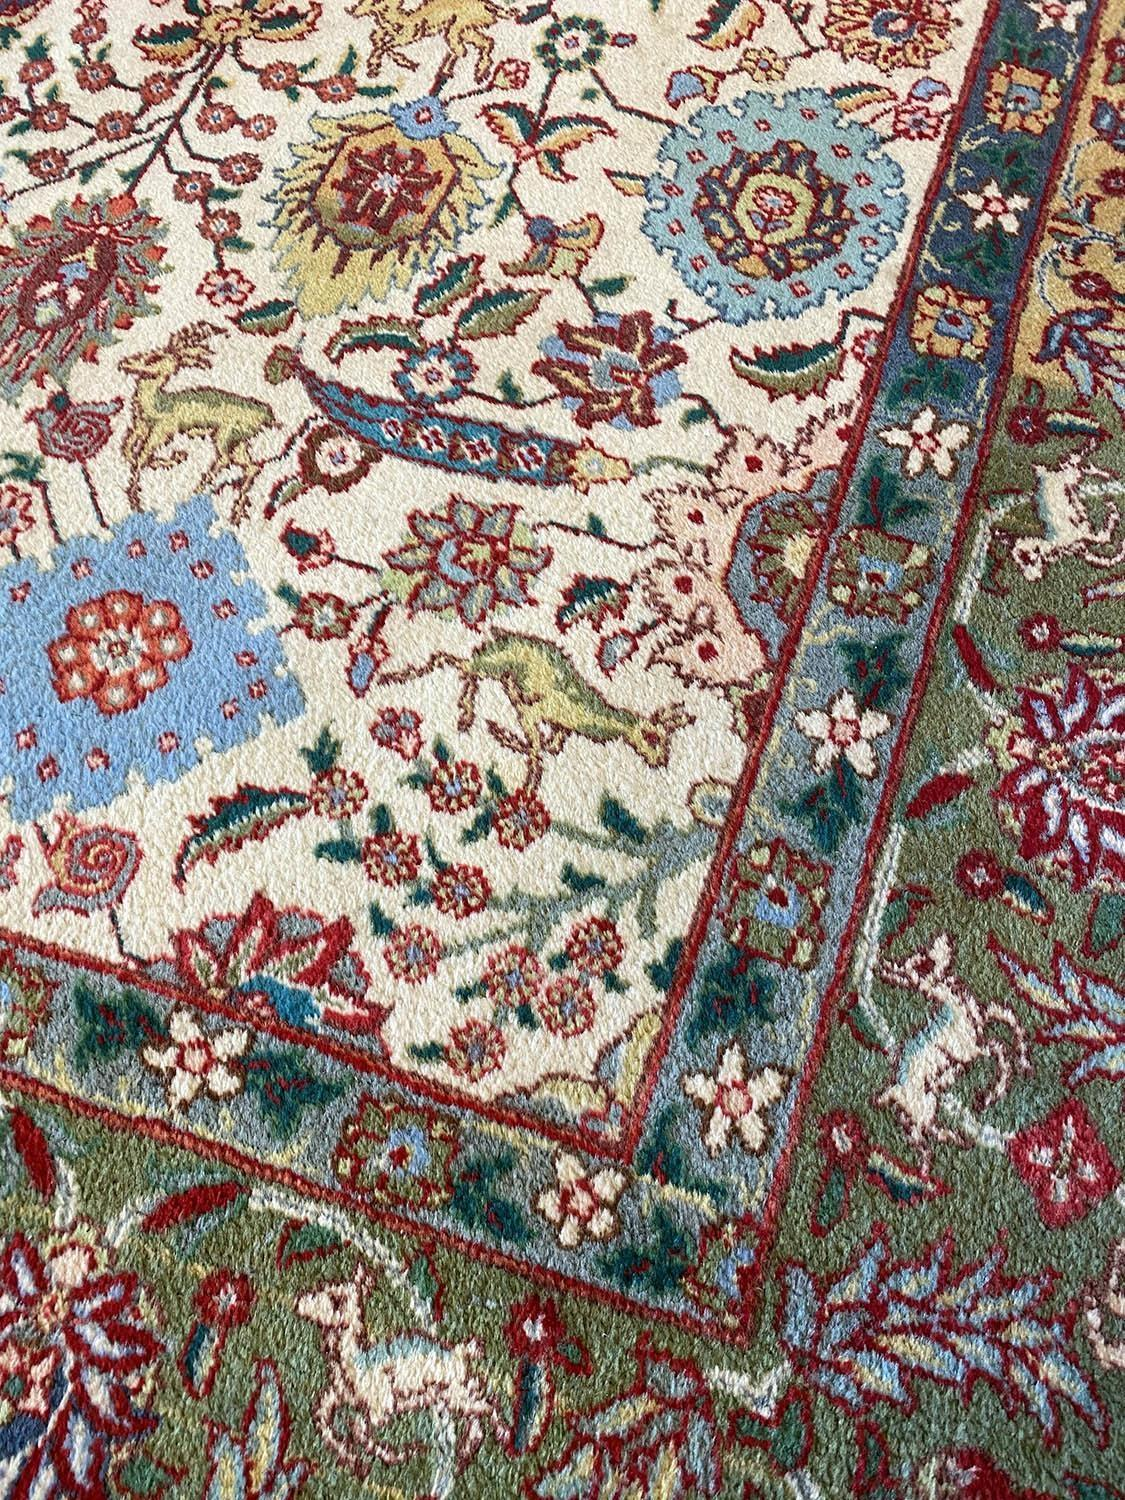 FINE PERSIAN TABRIZ CARPET, 387cm x 288cm, all over palmette and vine design with deer motifs within - Image 3 of 5